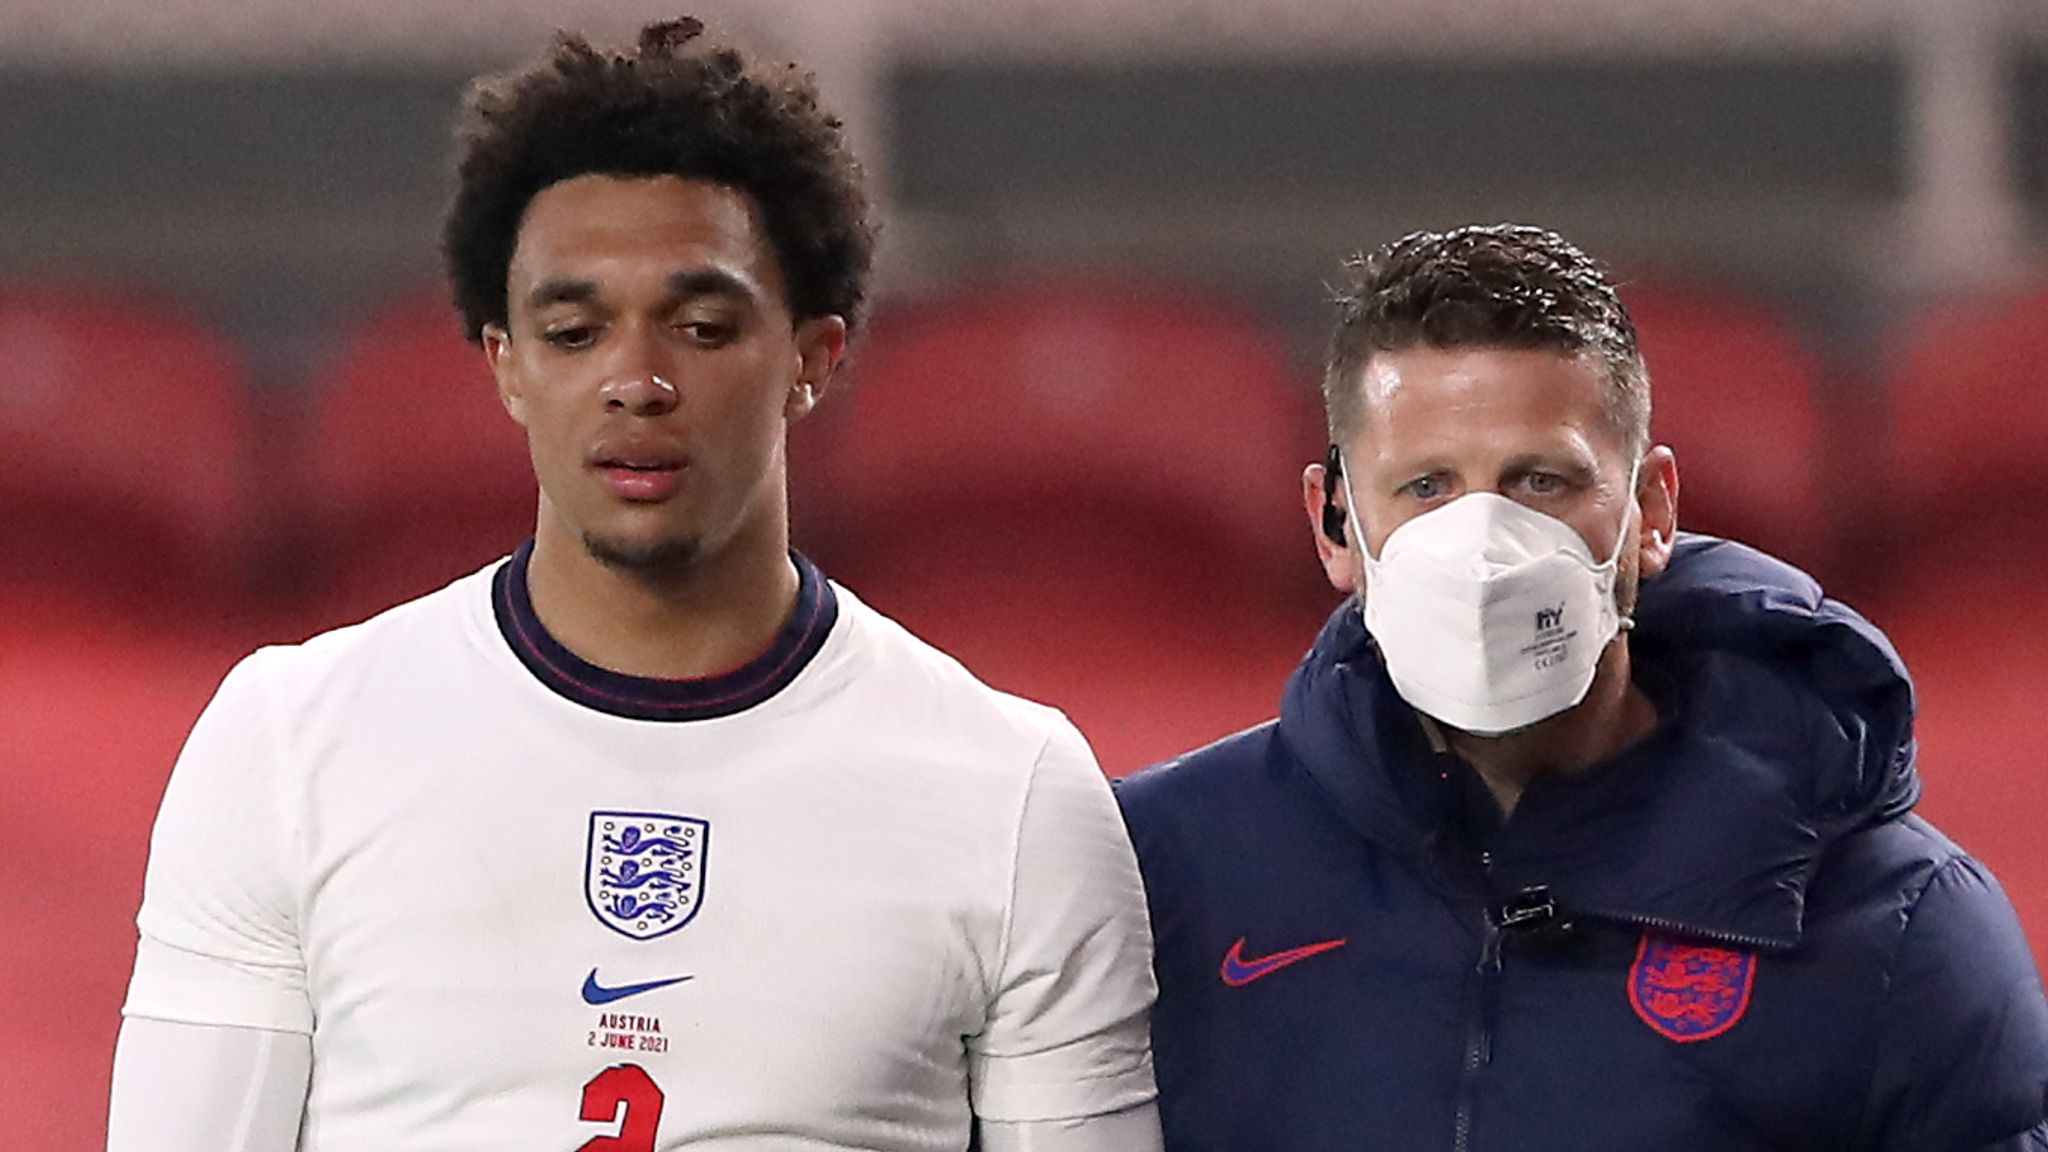 Trent Alexander-Arnold: England defender's thigh injury to be assessed,  says Gareth Southgate | Football News | Sky Sports